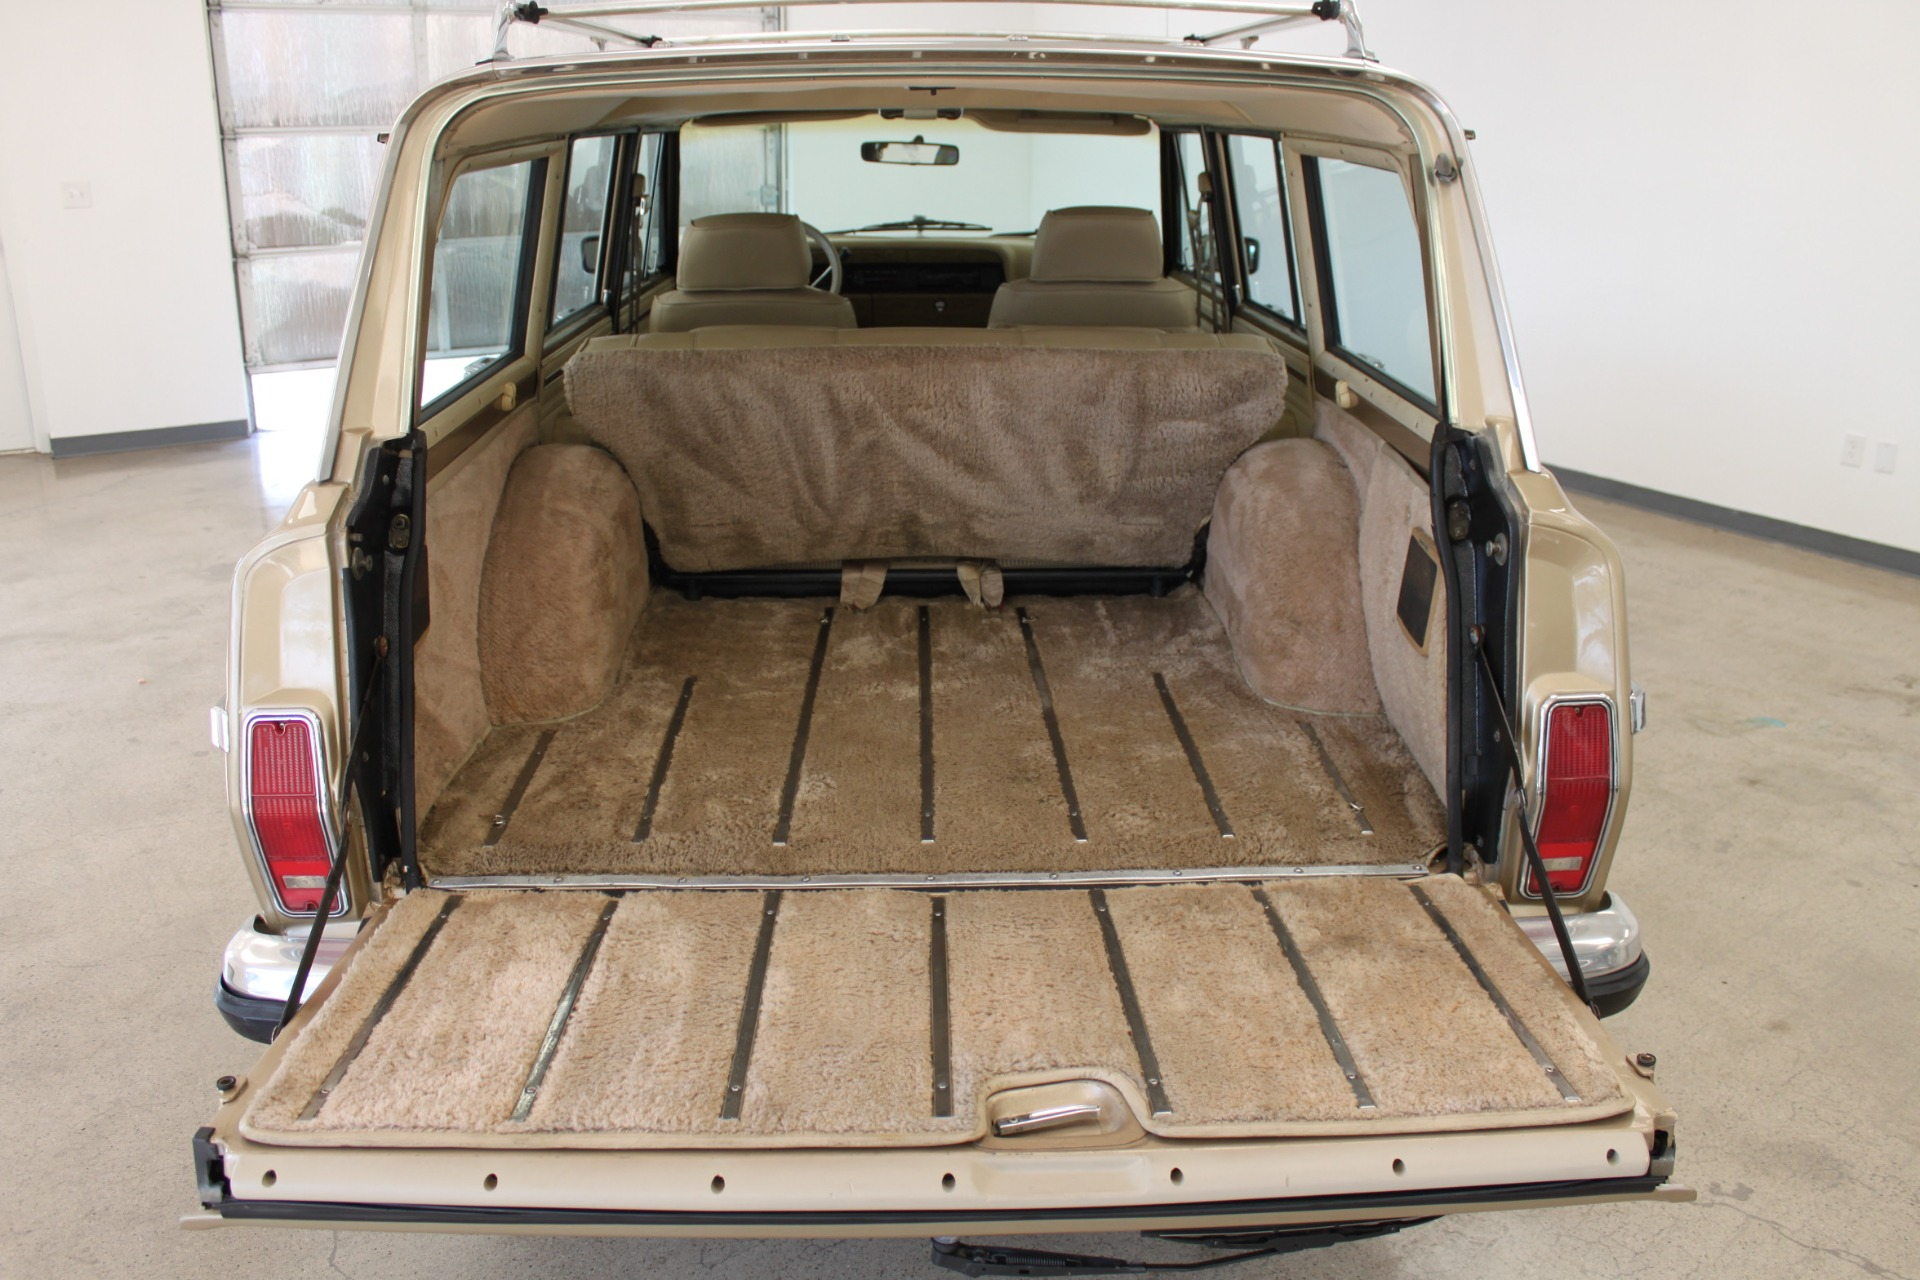 Used-1990-Jeep-Grand-Wagoneer-Land-Rover